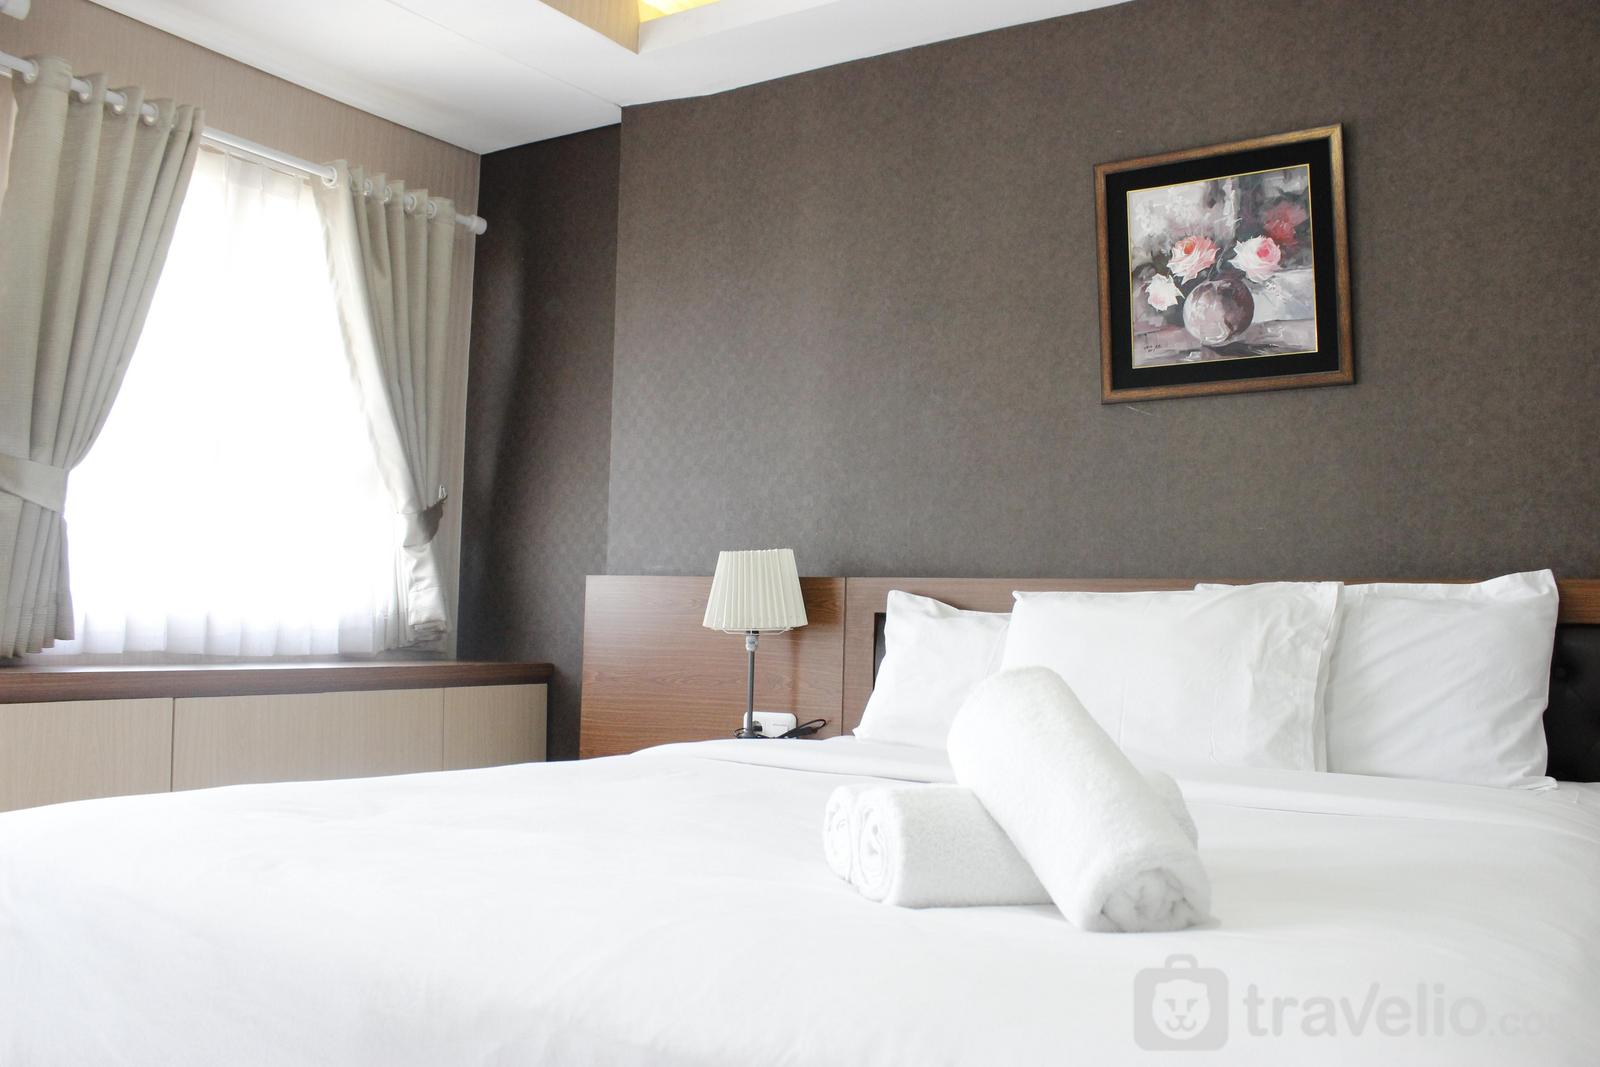 Gateway Pasteur Apartment - Delightful 1BR Gateway Pasteur Apartment near Pasteur Exit Toll By Travelio